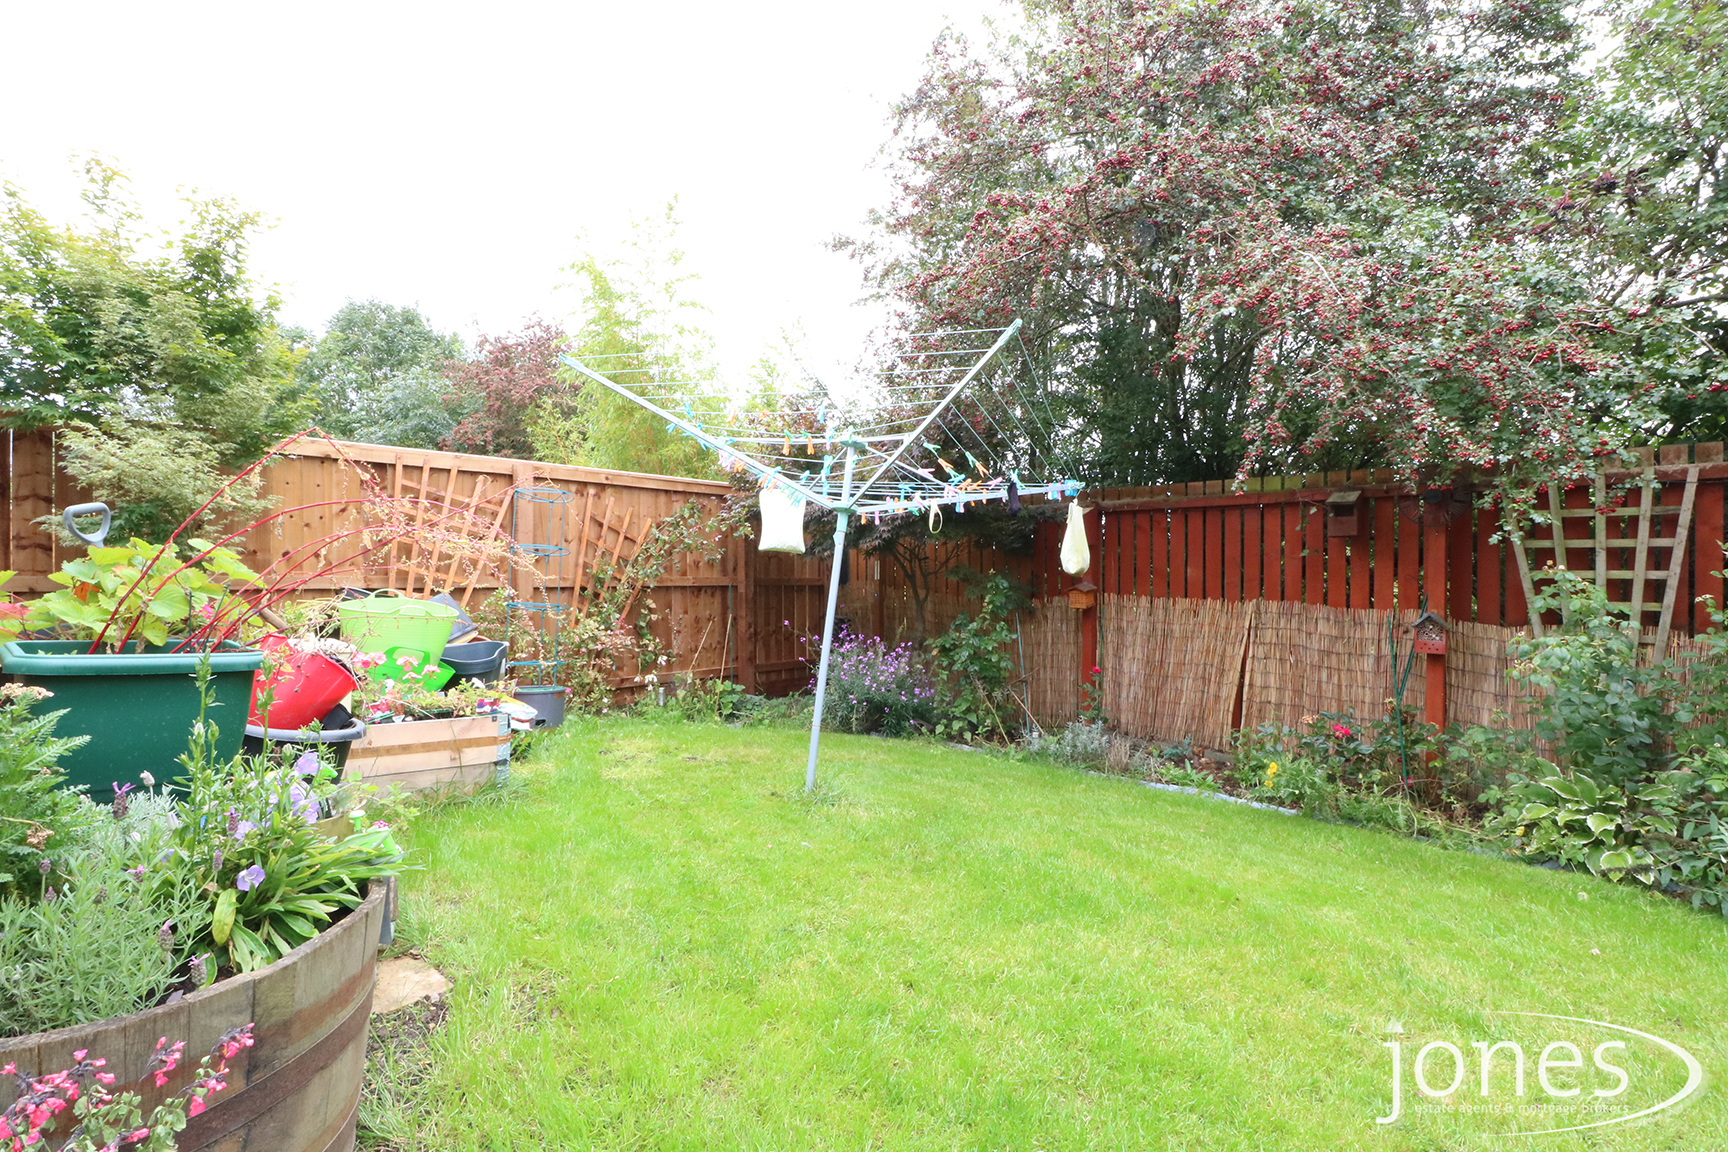 Home for Sale Let - Photo 19 West End Way , Low Hartburn,Stockton on Tees,TS18 3UA